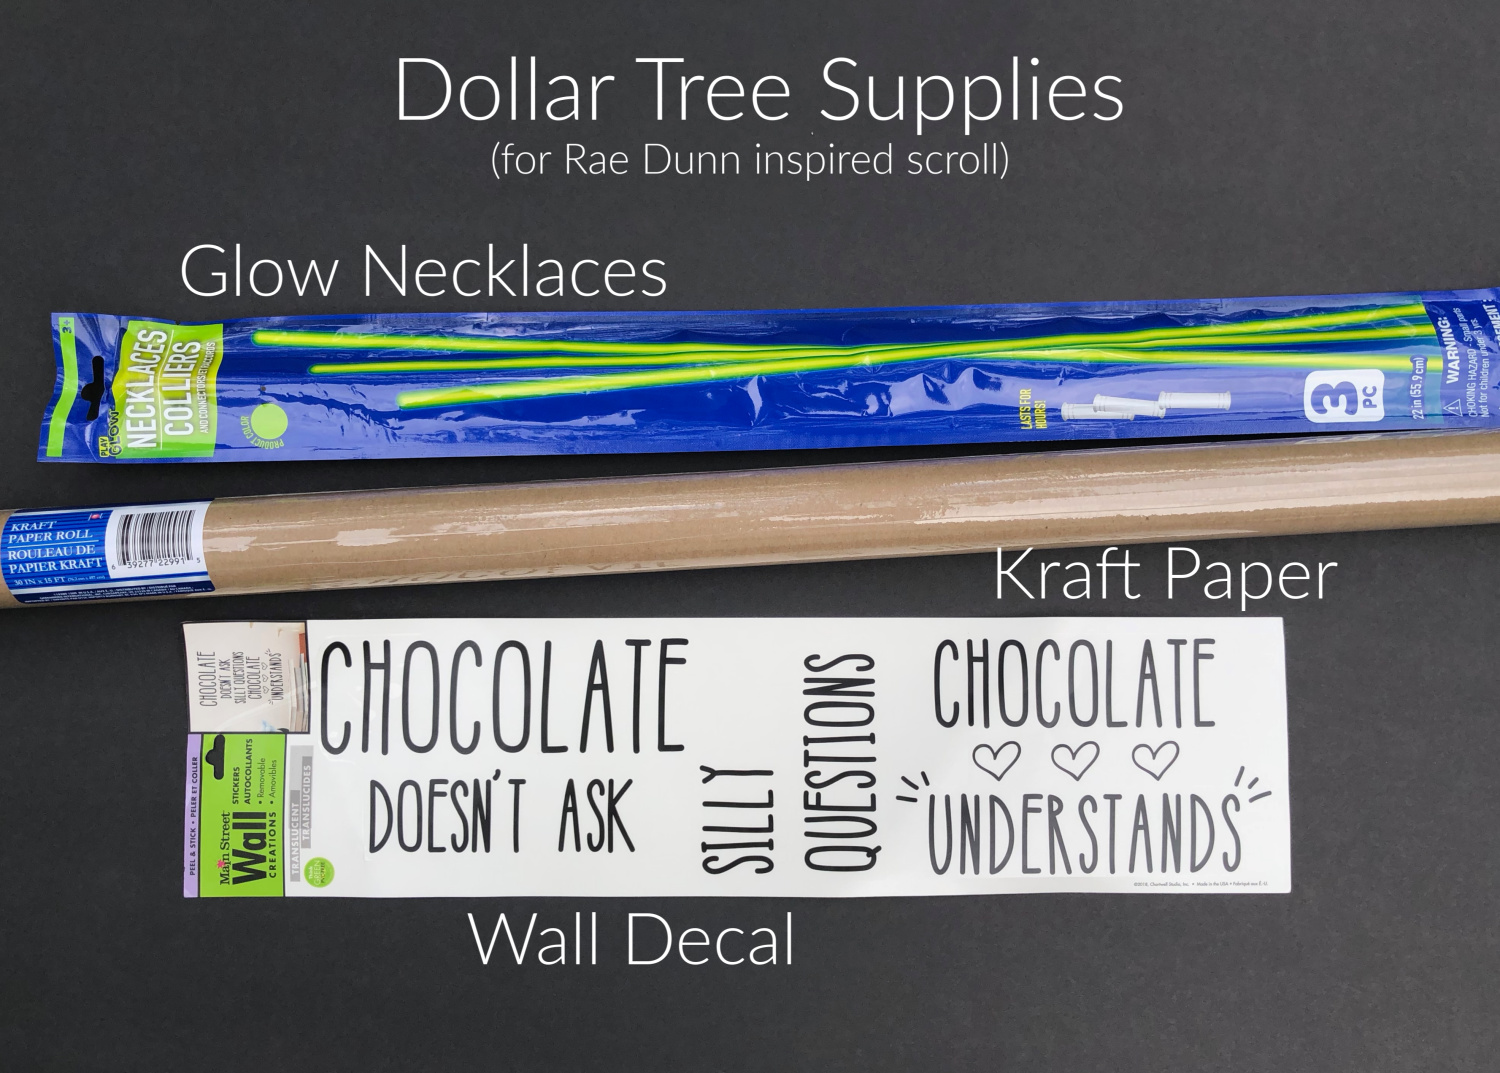 dollar tree supplies fir Rae Dunn inspired scroll wall decor